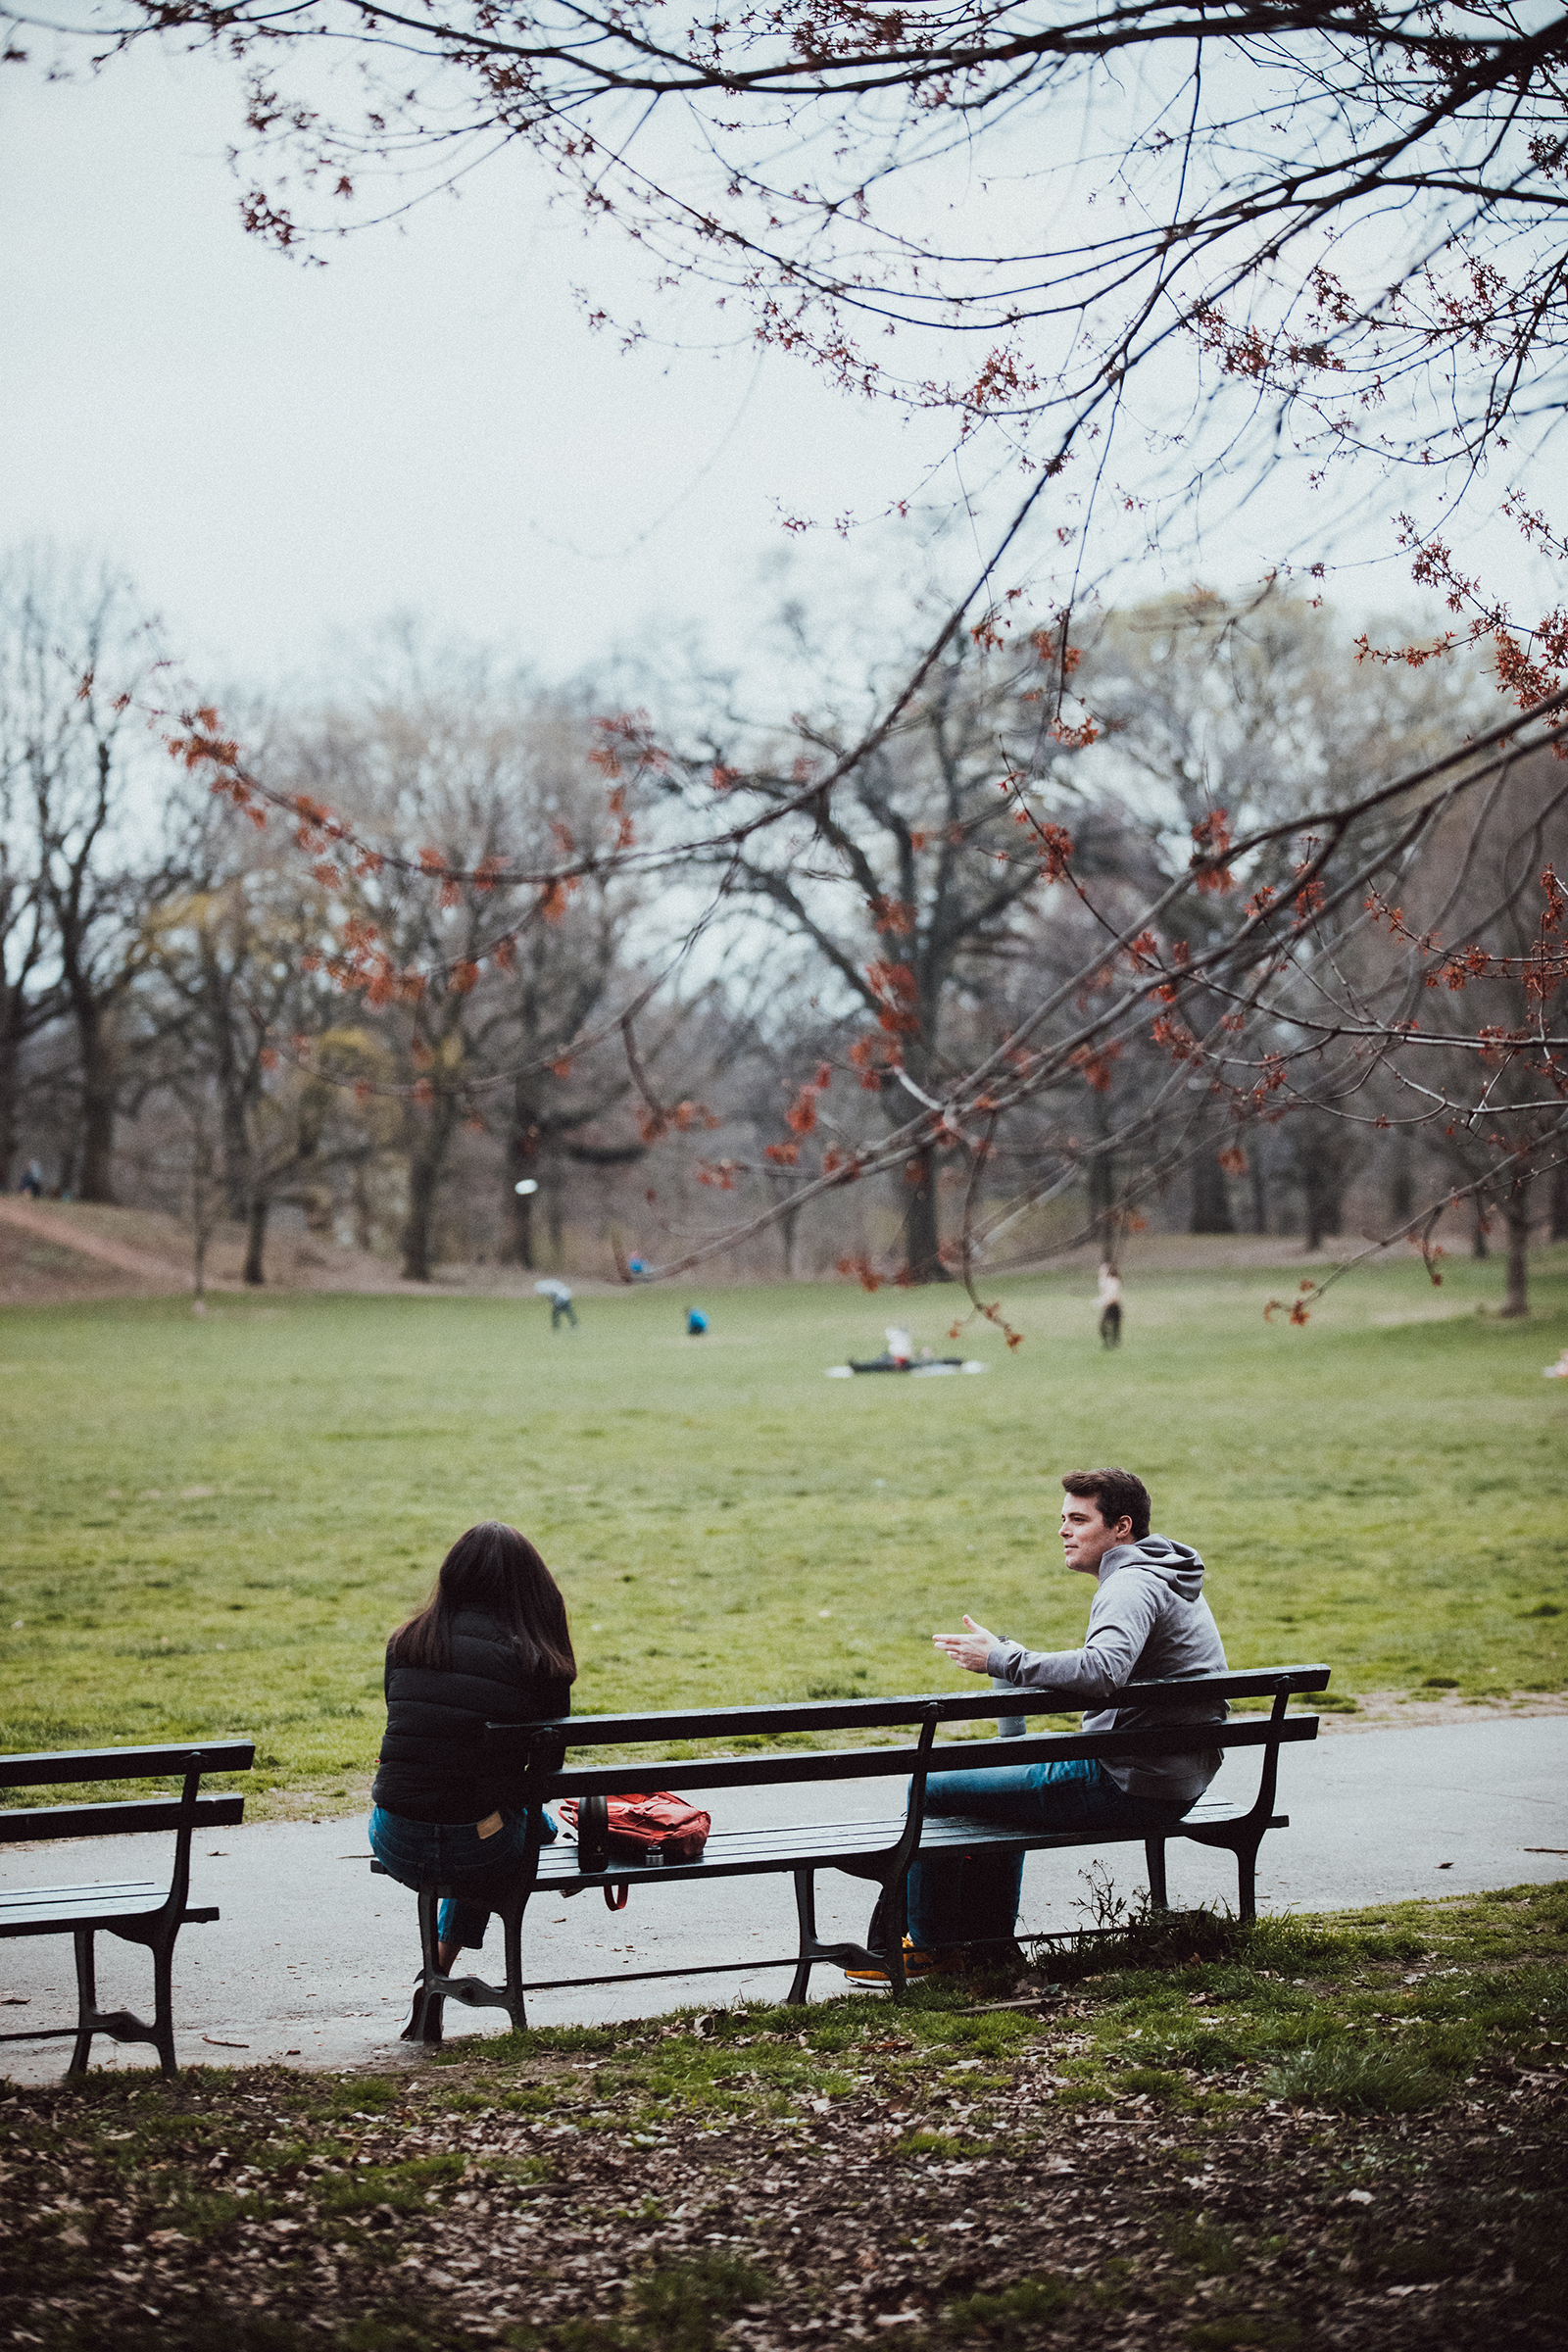 A couple having a conversation in Prospect Park, Brooklyn on April 5th, 2020.